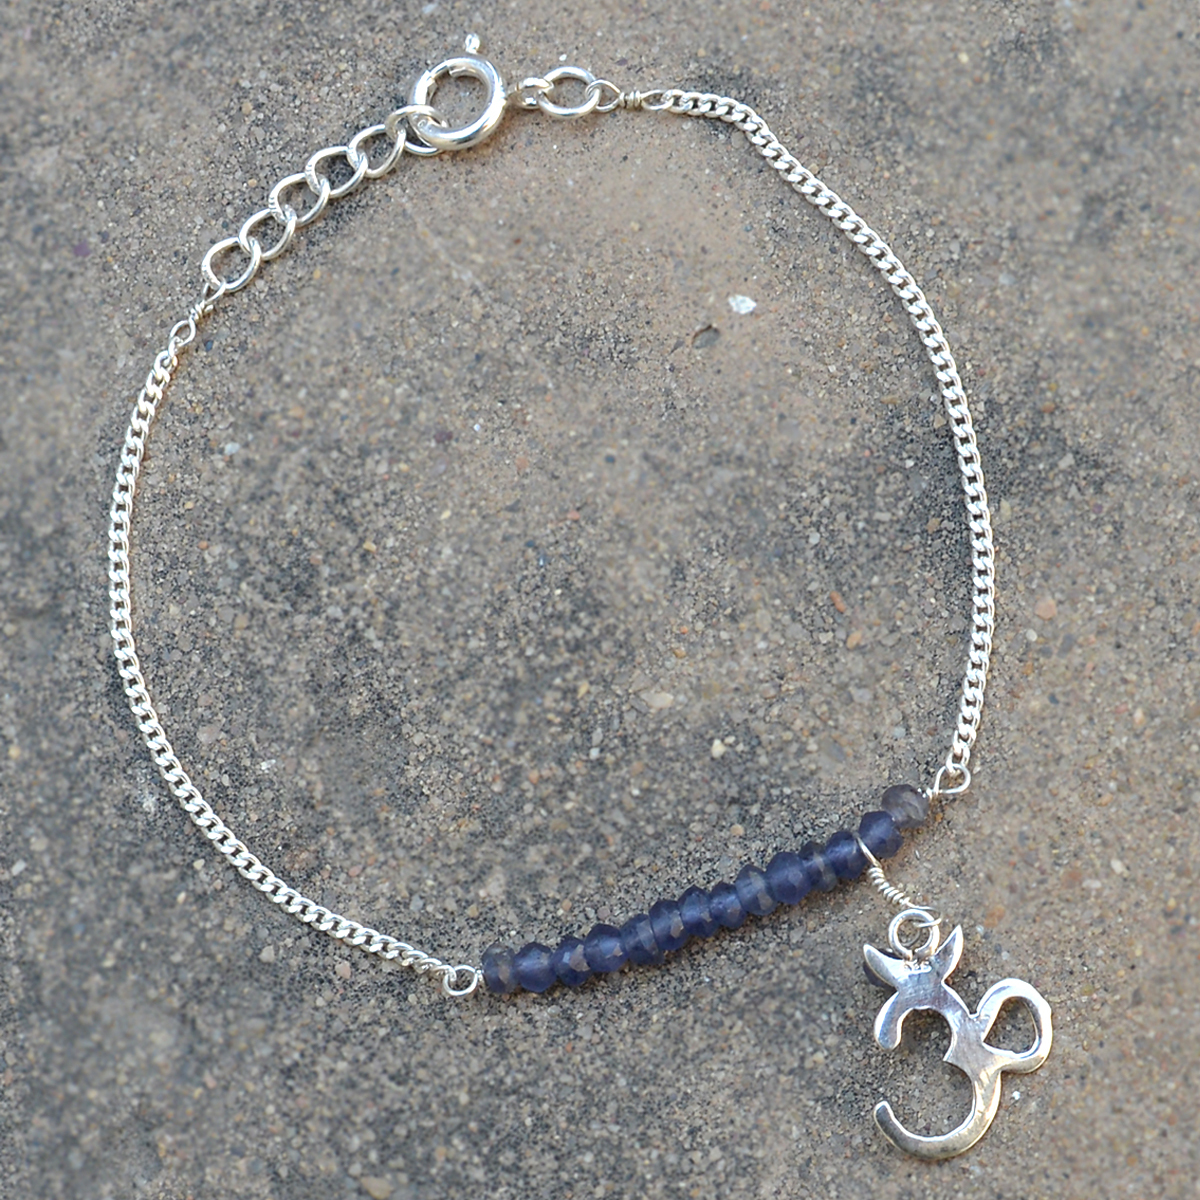 Handmade Jewelry Manufacturer 3mm Iolite Rondelle Beaded 925 Sterling Silver Curb-Chain Bracelet Jaipur Rajasthan India